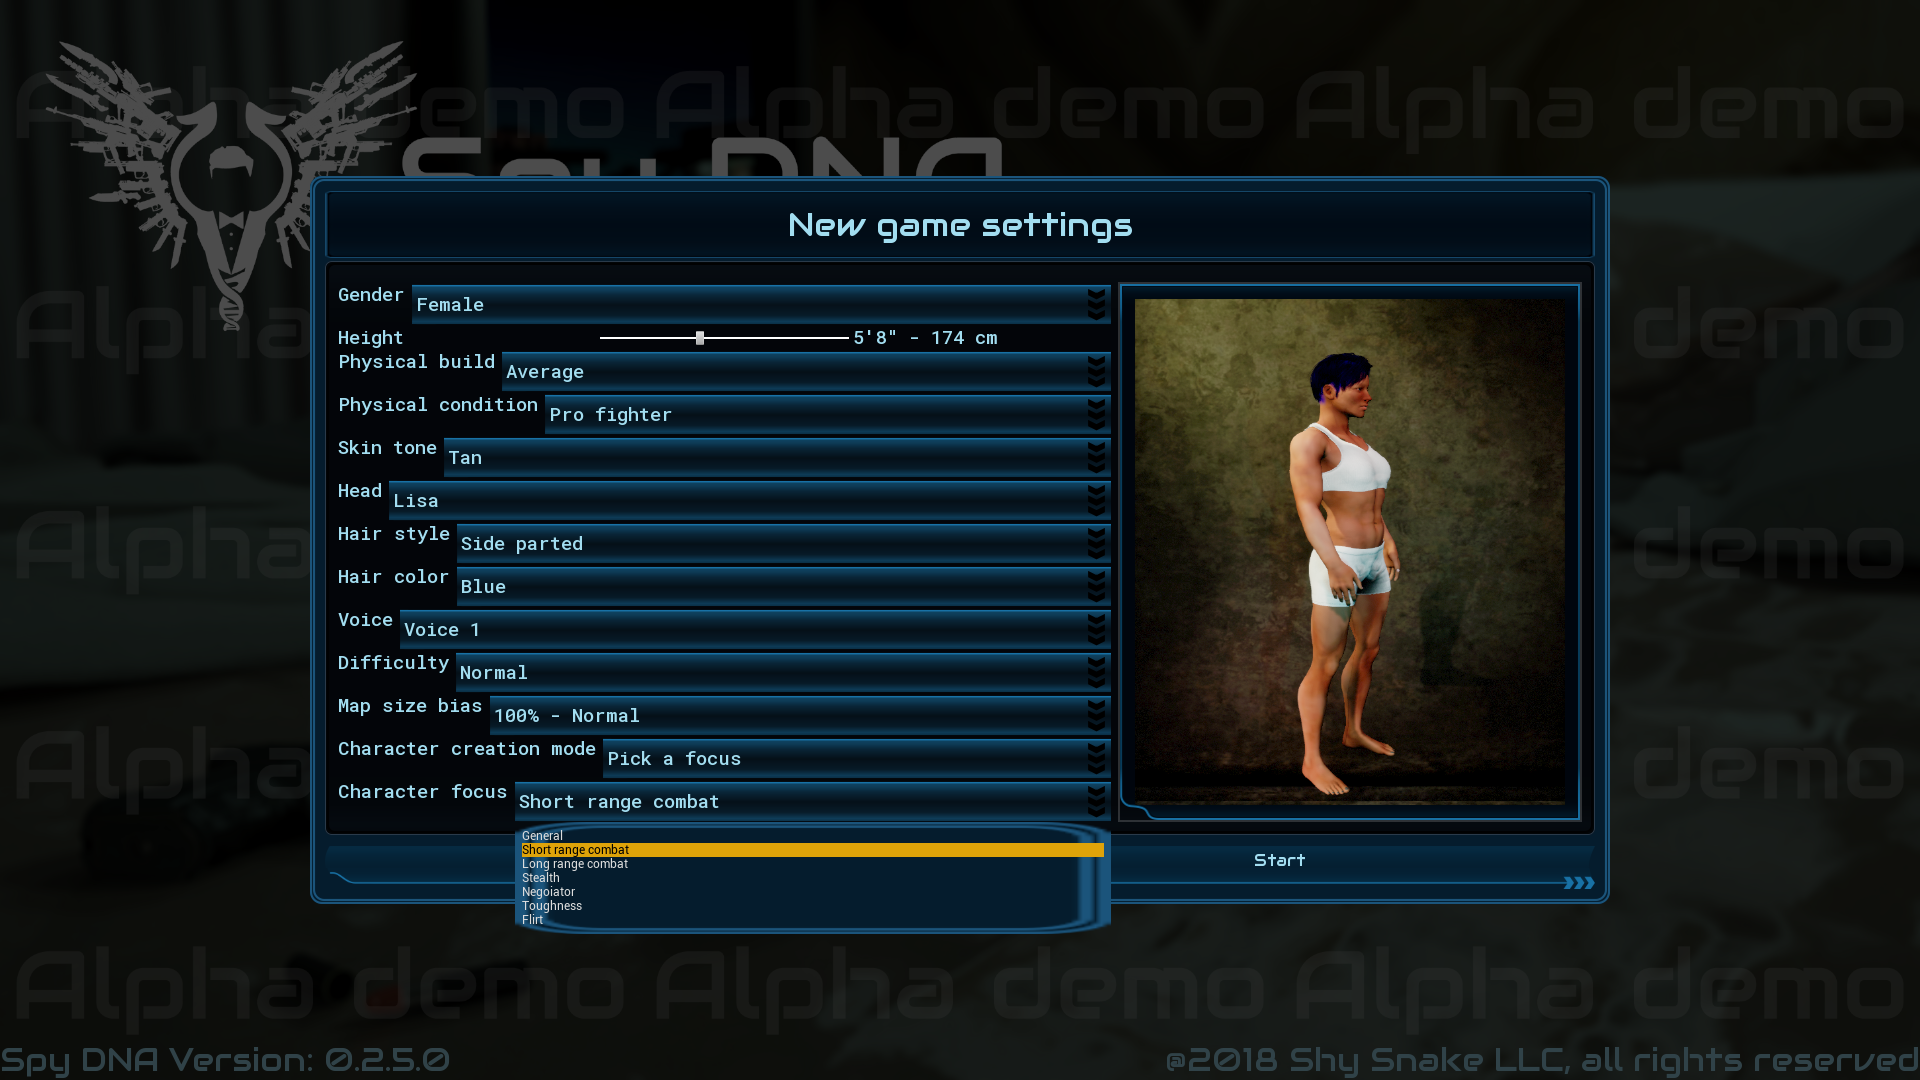 You can select a pre-configured character to play